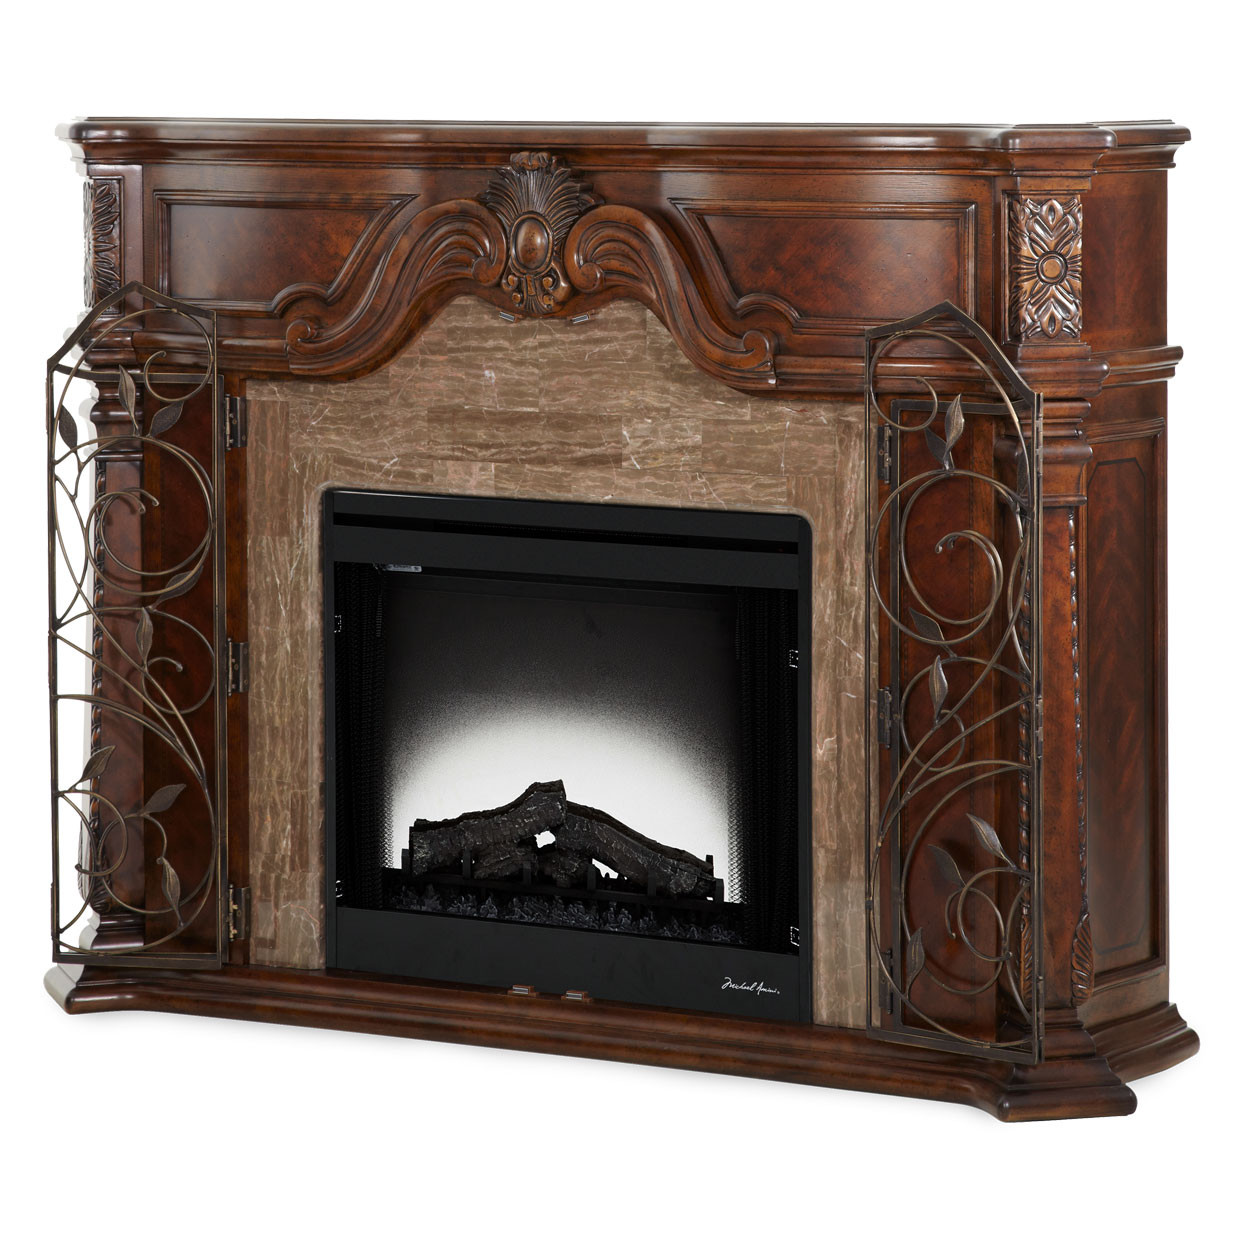 Aico Windsor Courtfireplace Vintage Fruitwood By Michael Amini